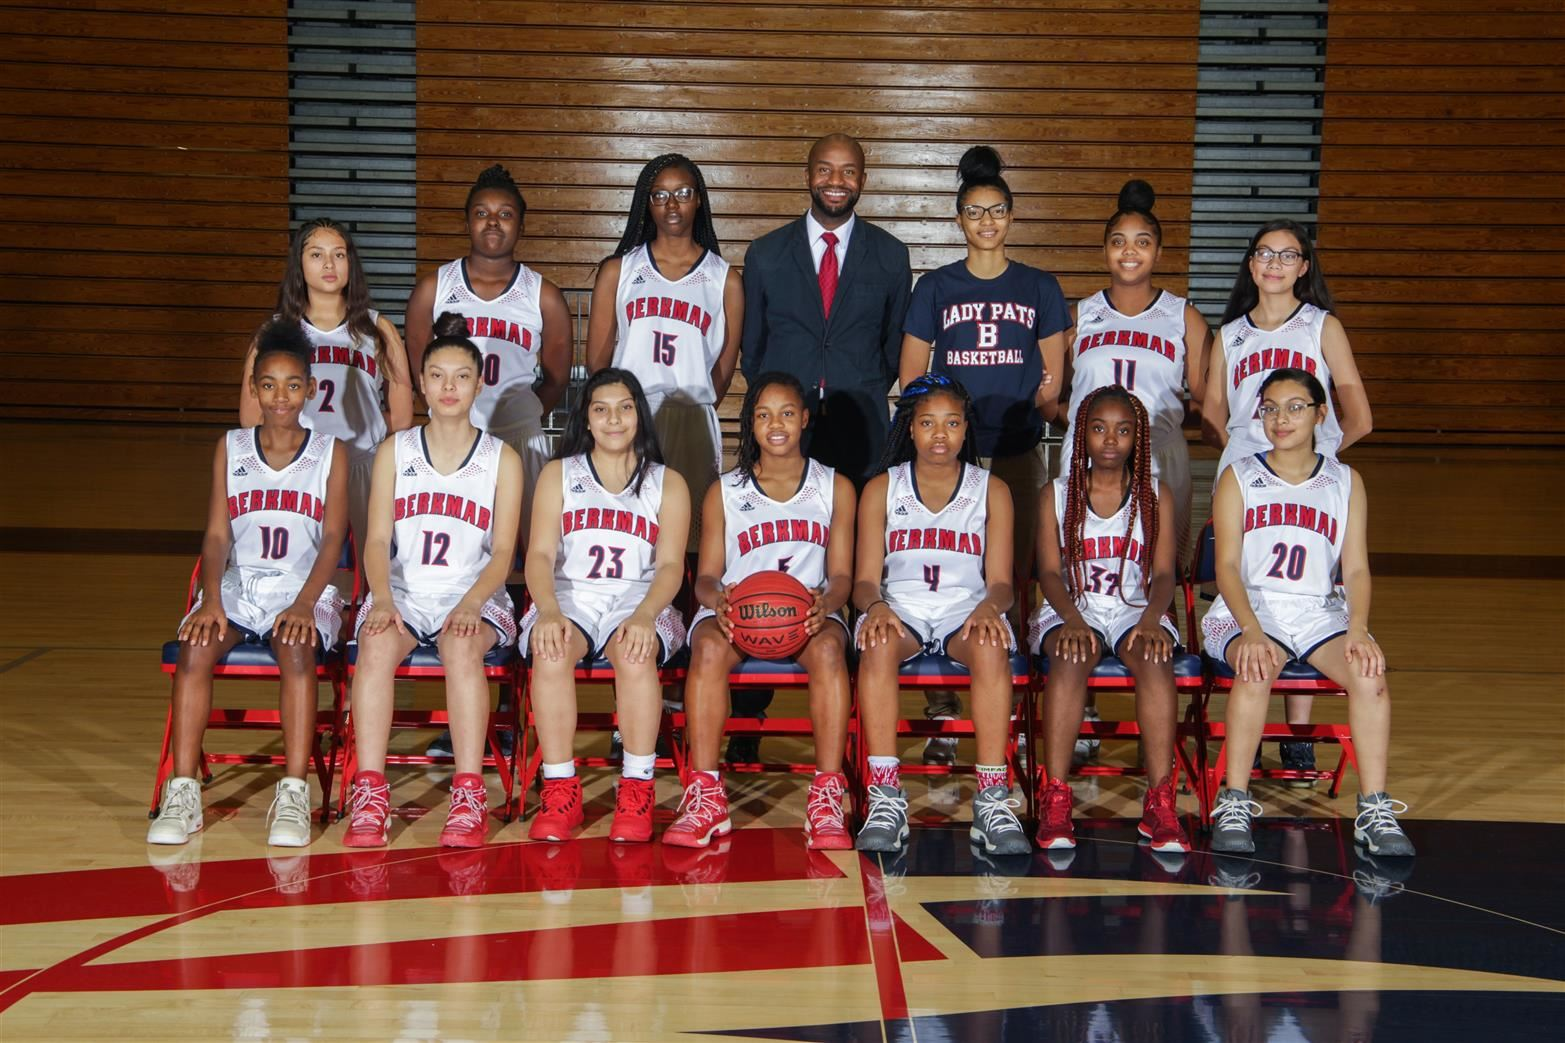 Jv team picture